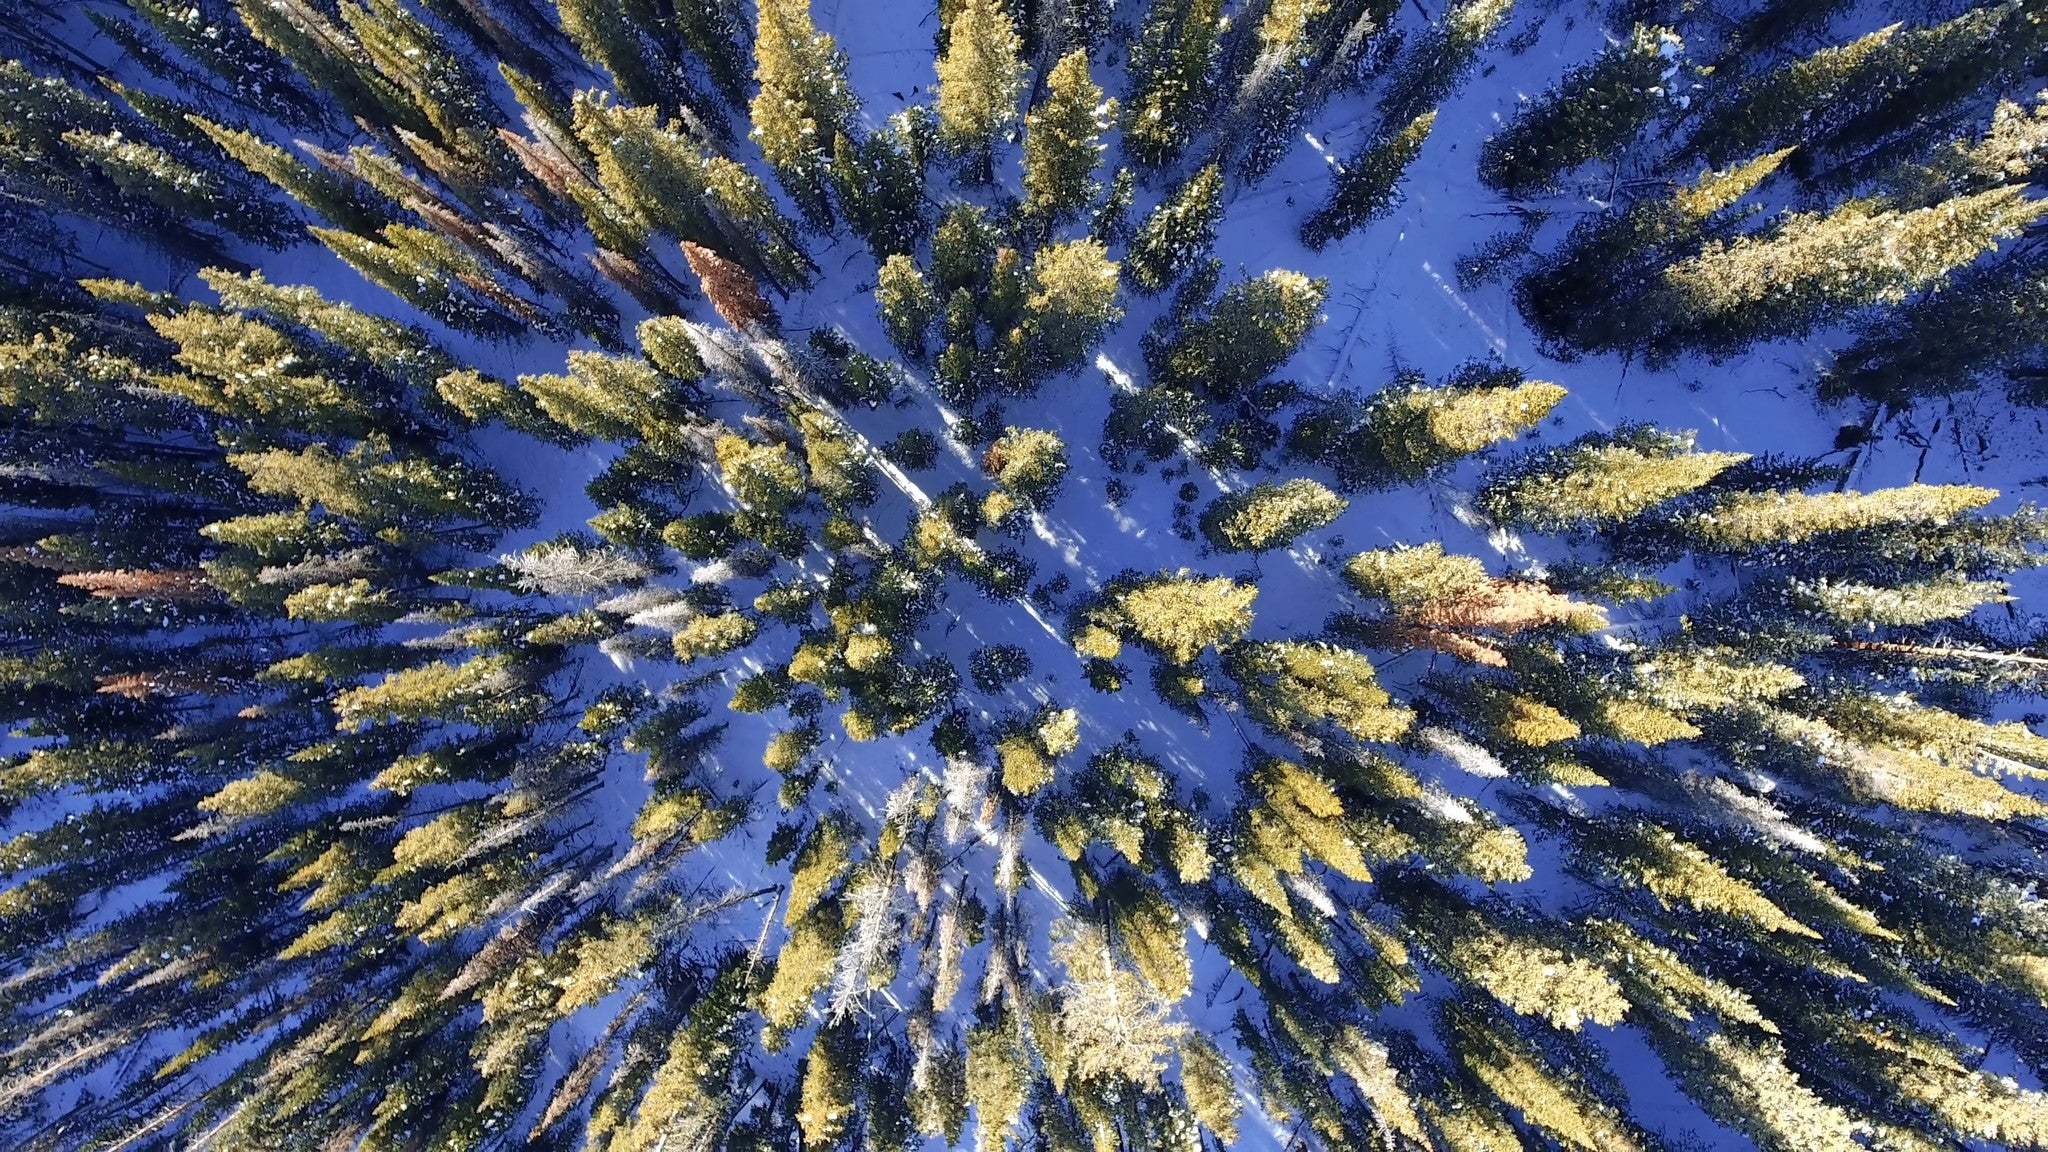 Free 4K Aerial Stock Video: Drone Flying Over Snow Covered Pine Trees